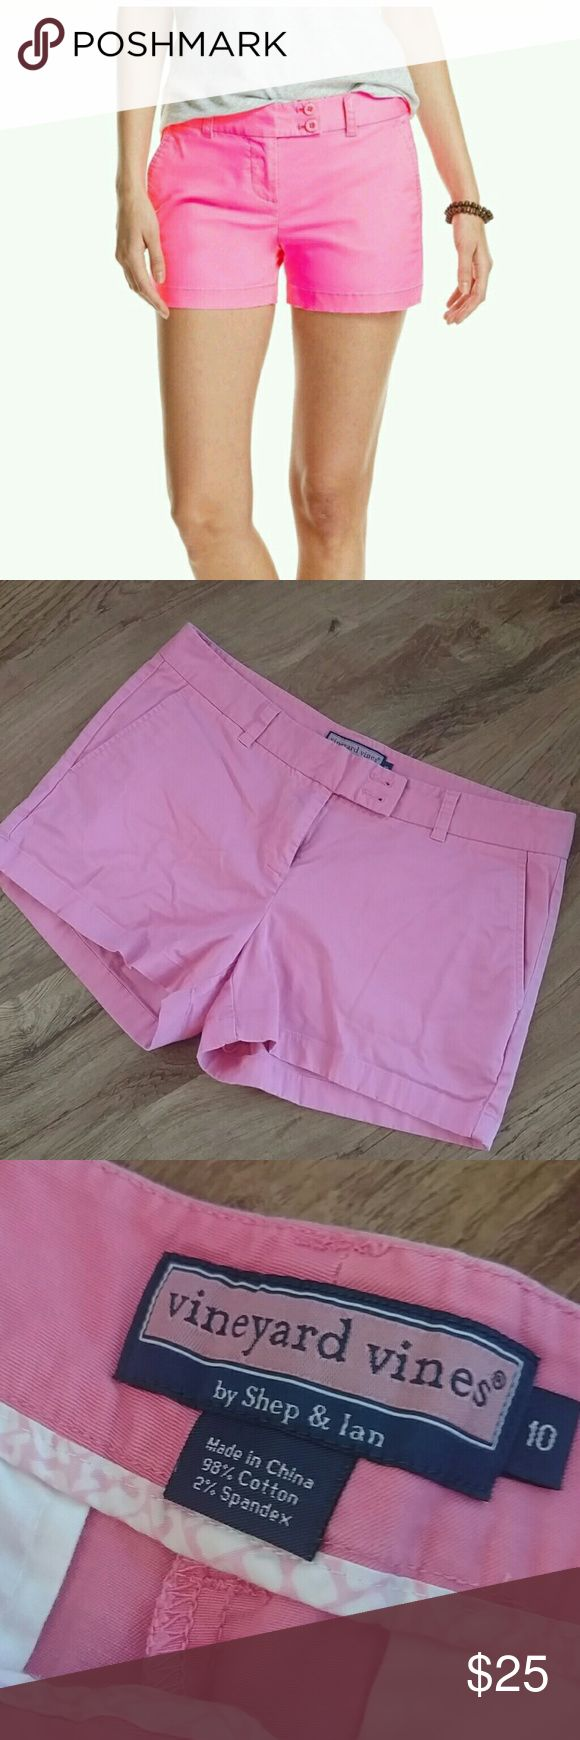 "Vineyard Vines Washed Dayboat Shorts In EUC! No flaws. 98% cotton 2 % elastane . Inseam 3.25"" Vineyard Vines Shorts"